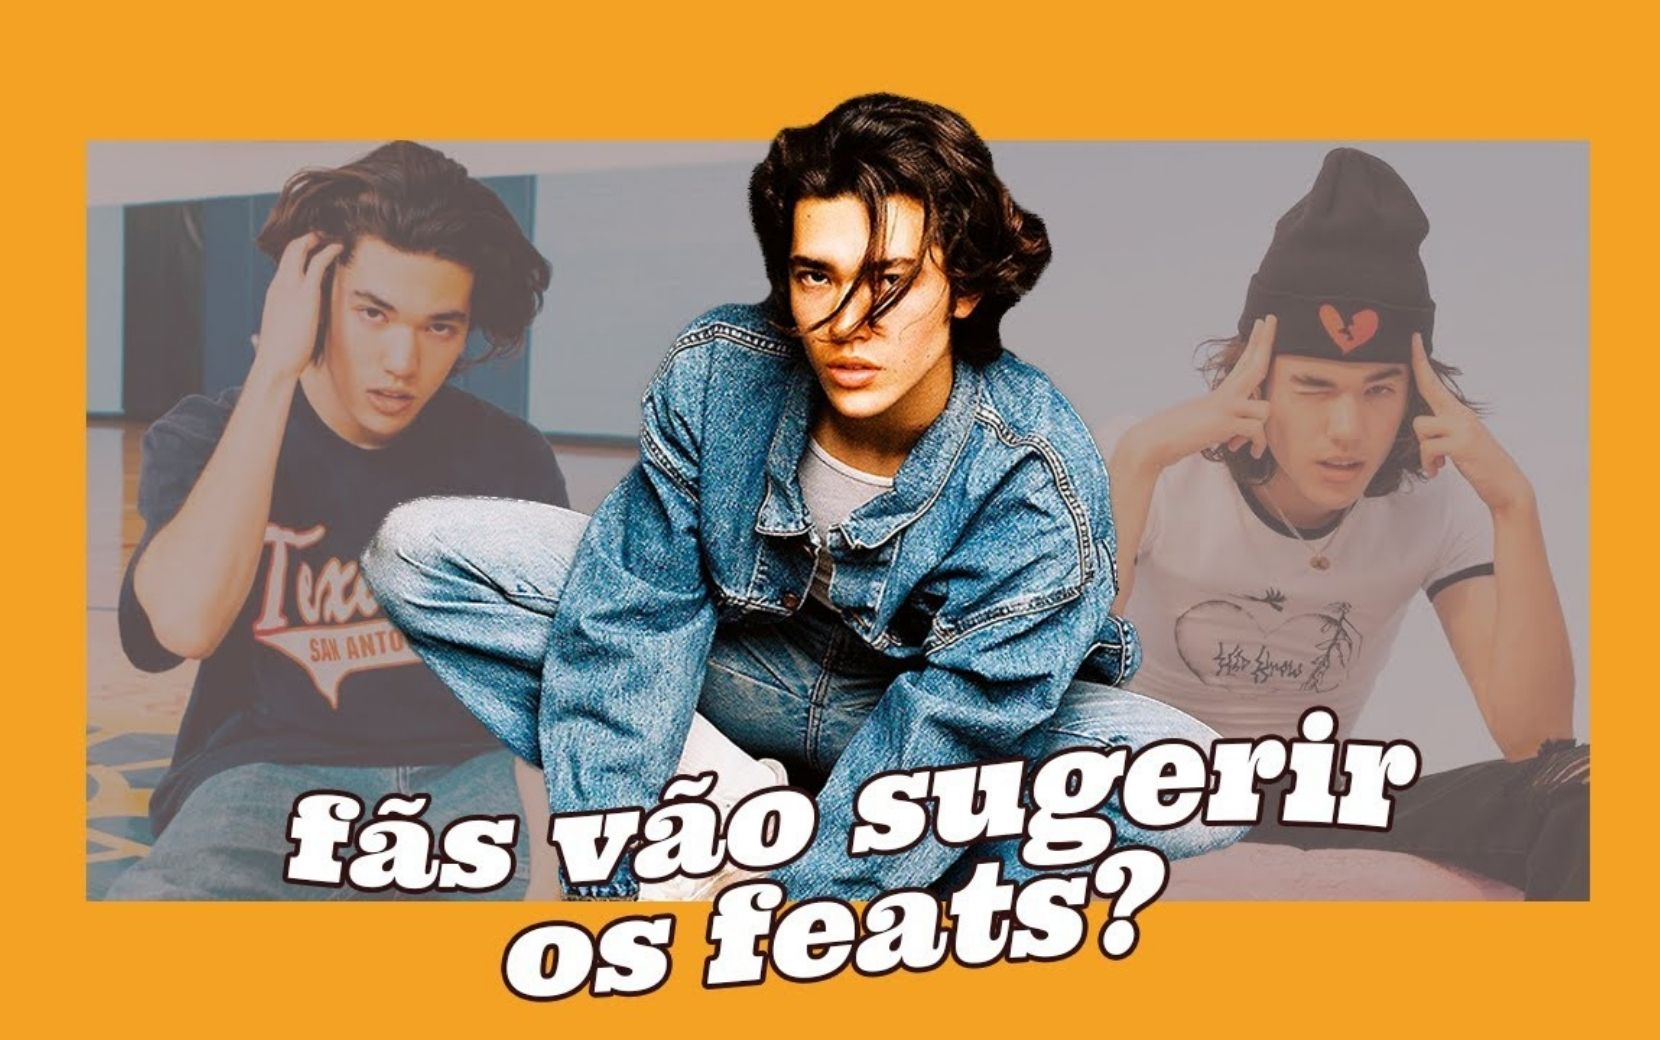 Entrevista com Conan Gray: novo single, feats e desafio Taylor Swift